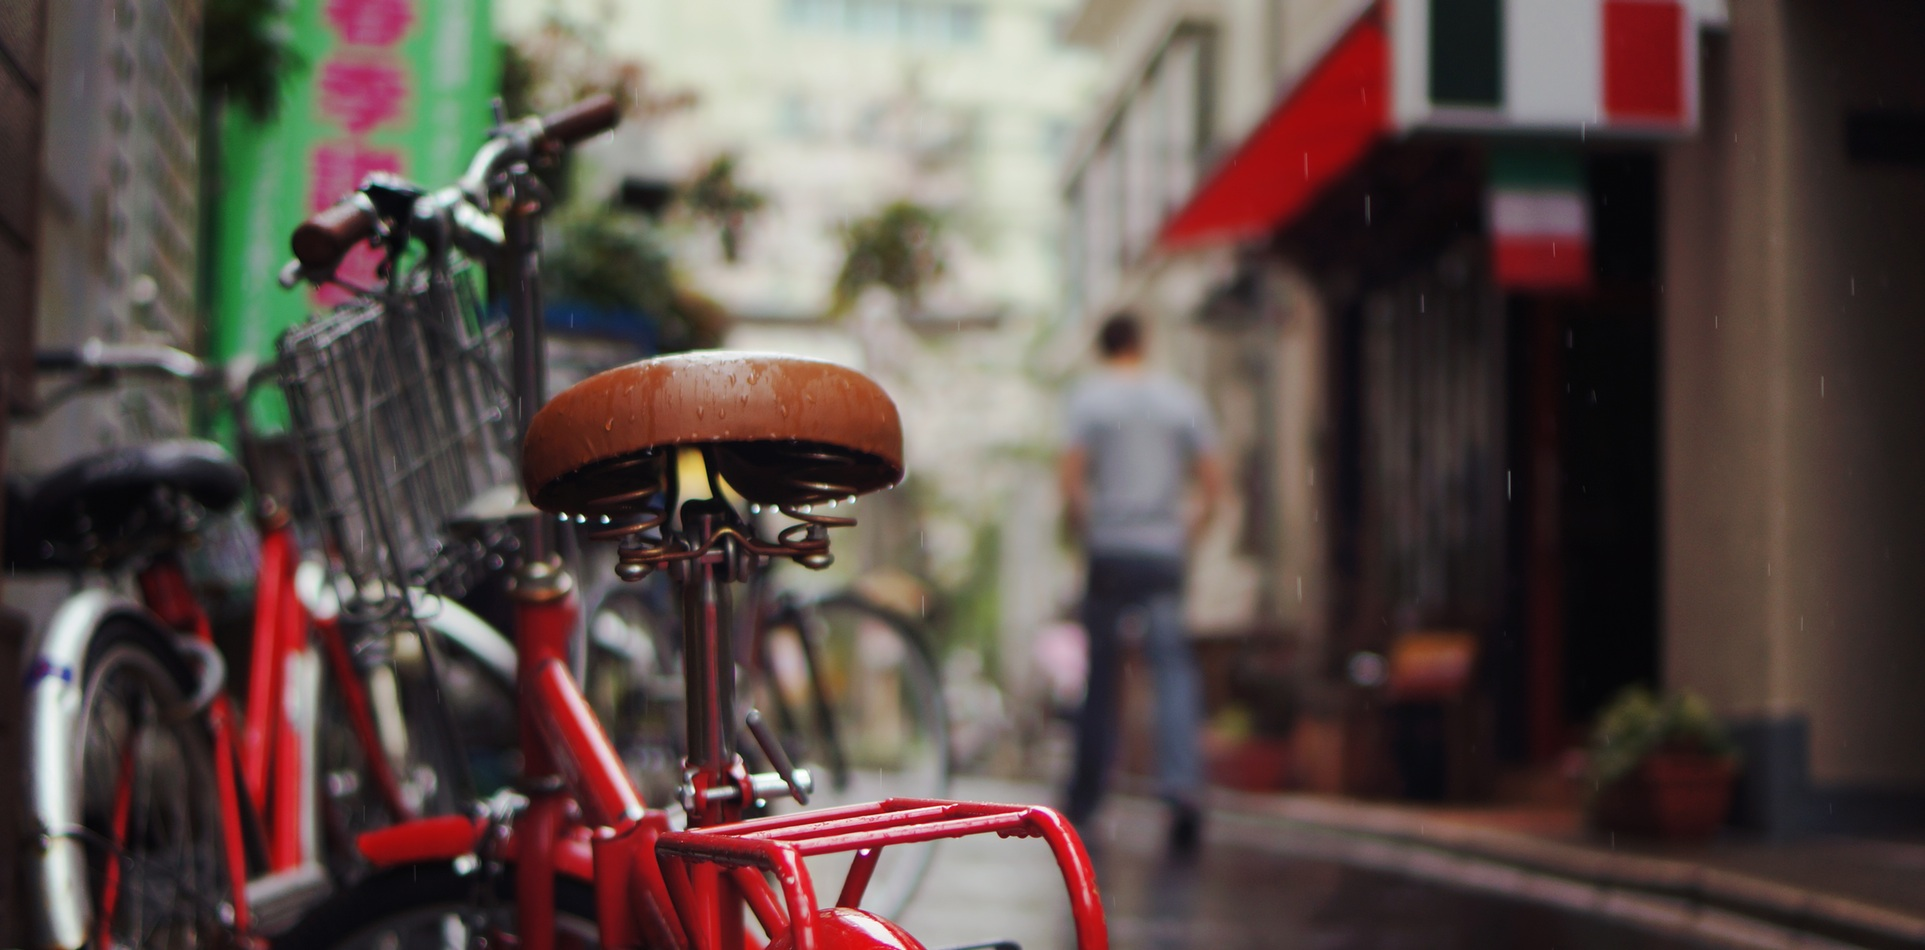 Weather Gallery - Bicycle in the Rain